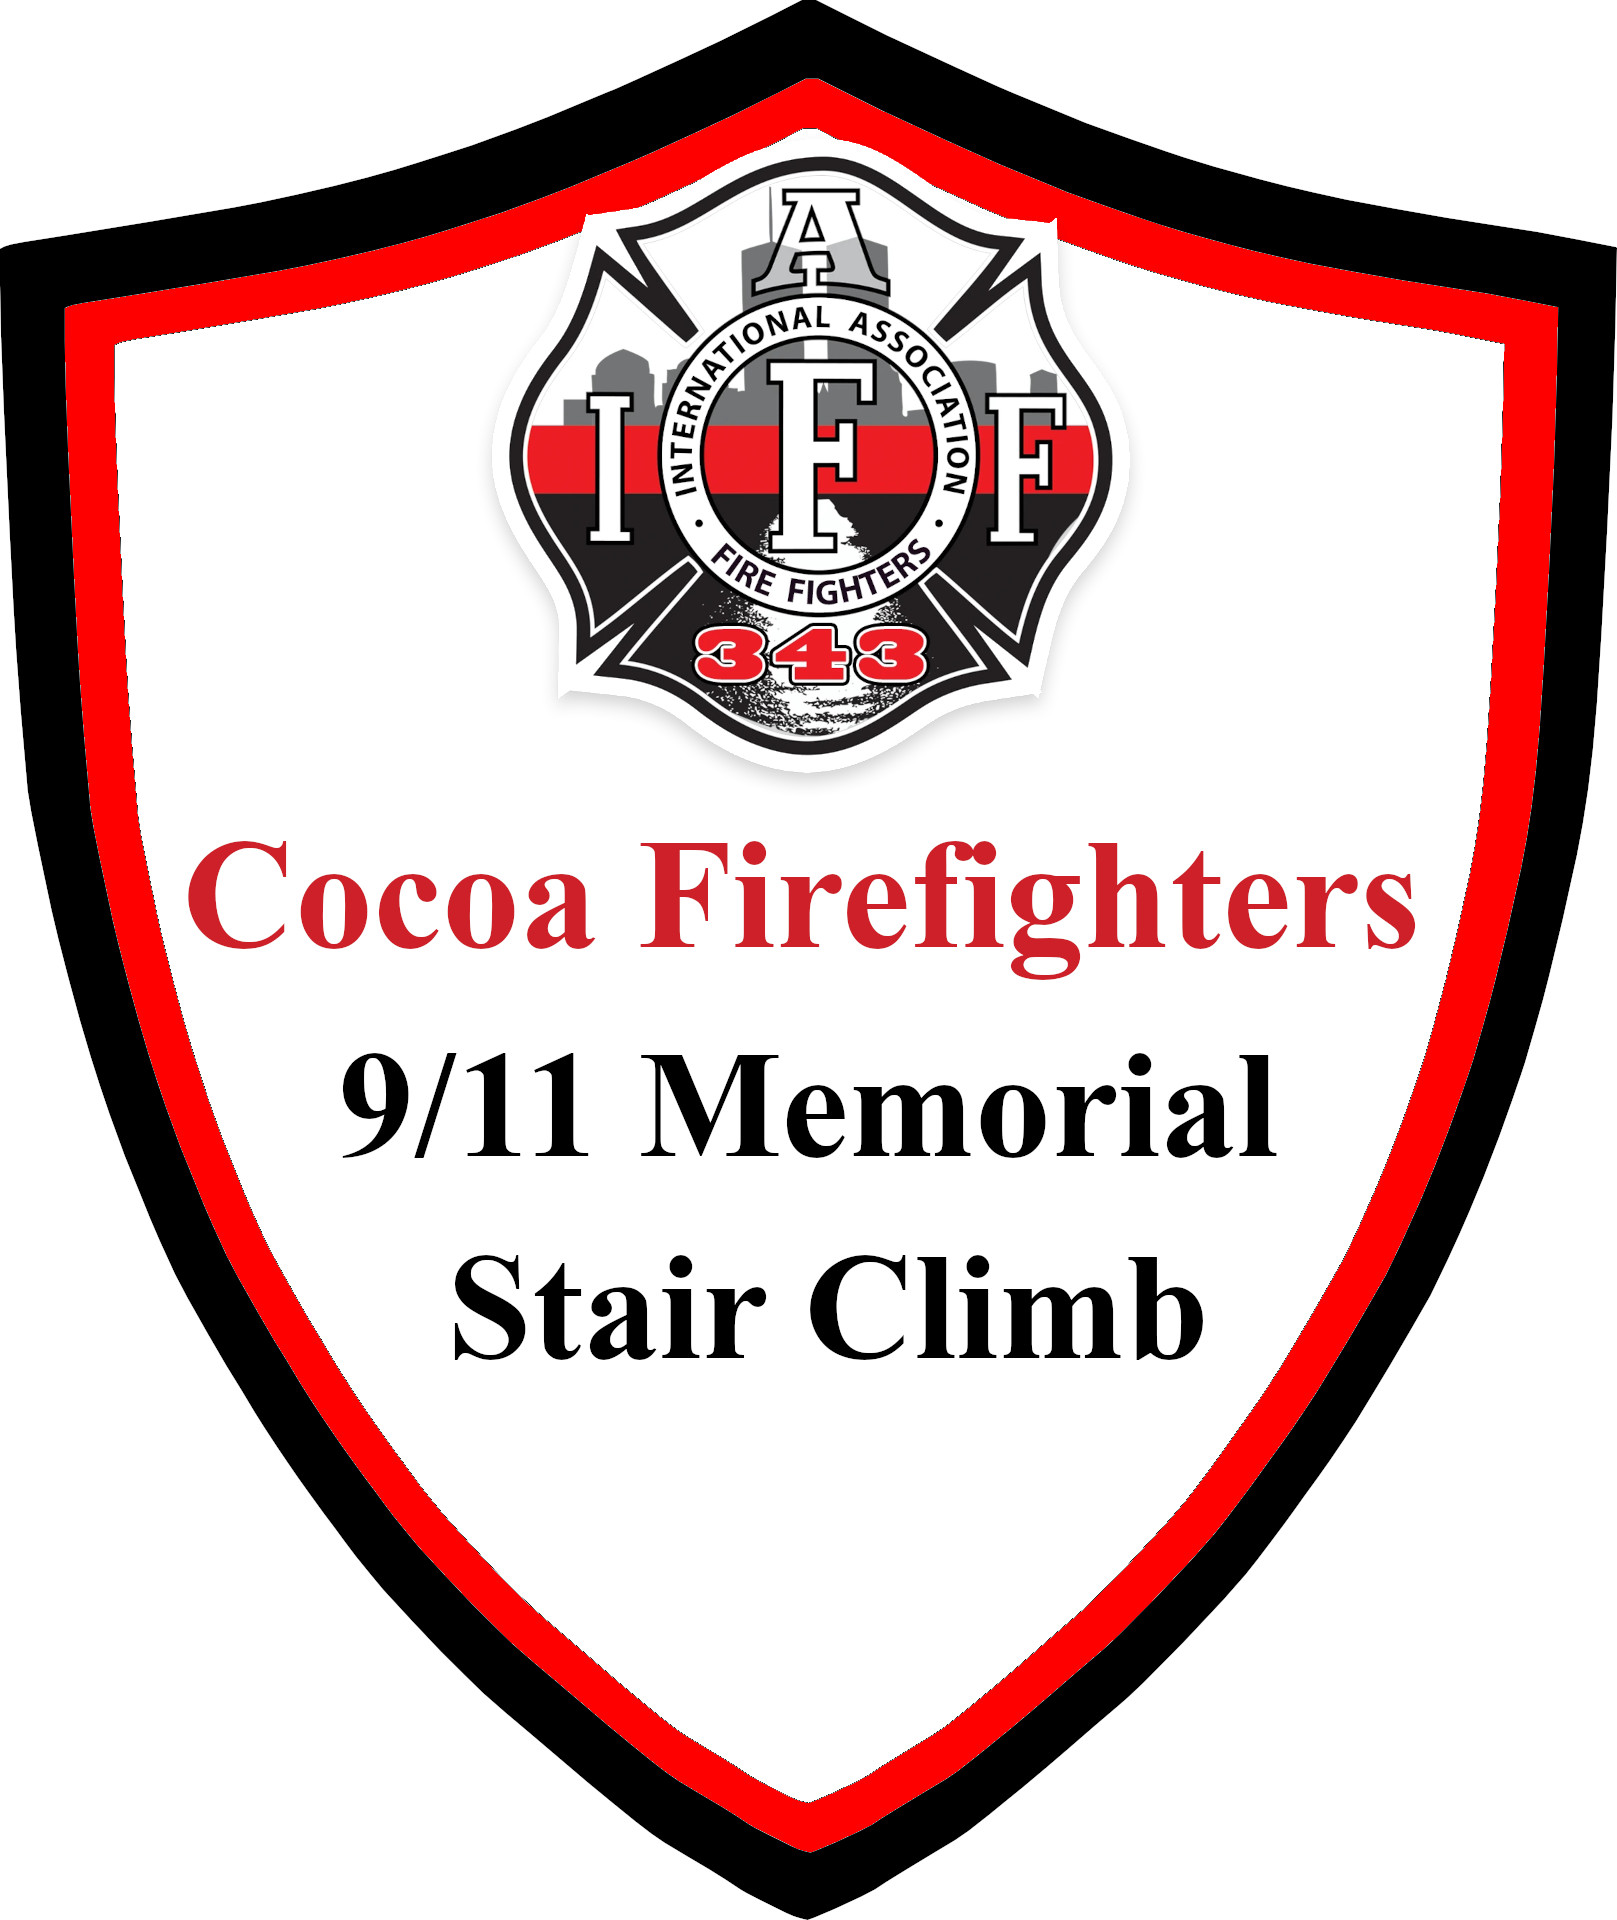 Cocoa Firefighters 9/11 Memorial Stair Climb